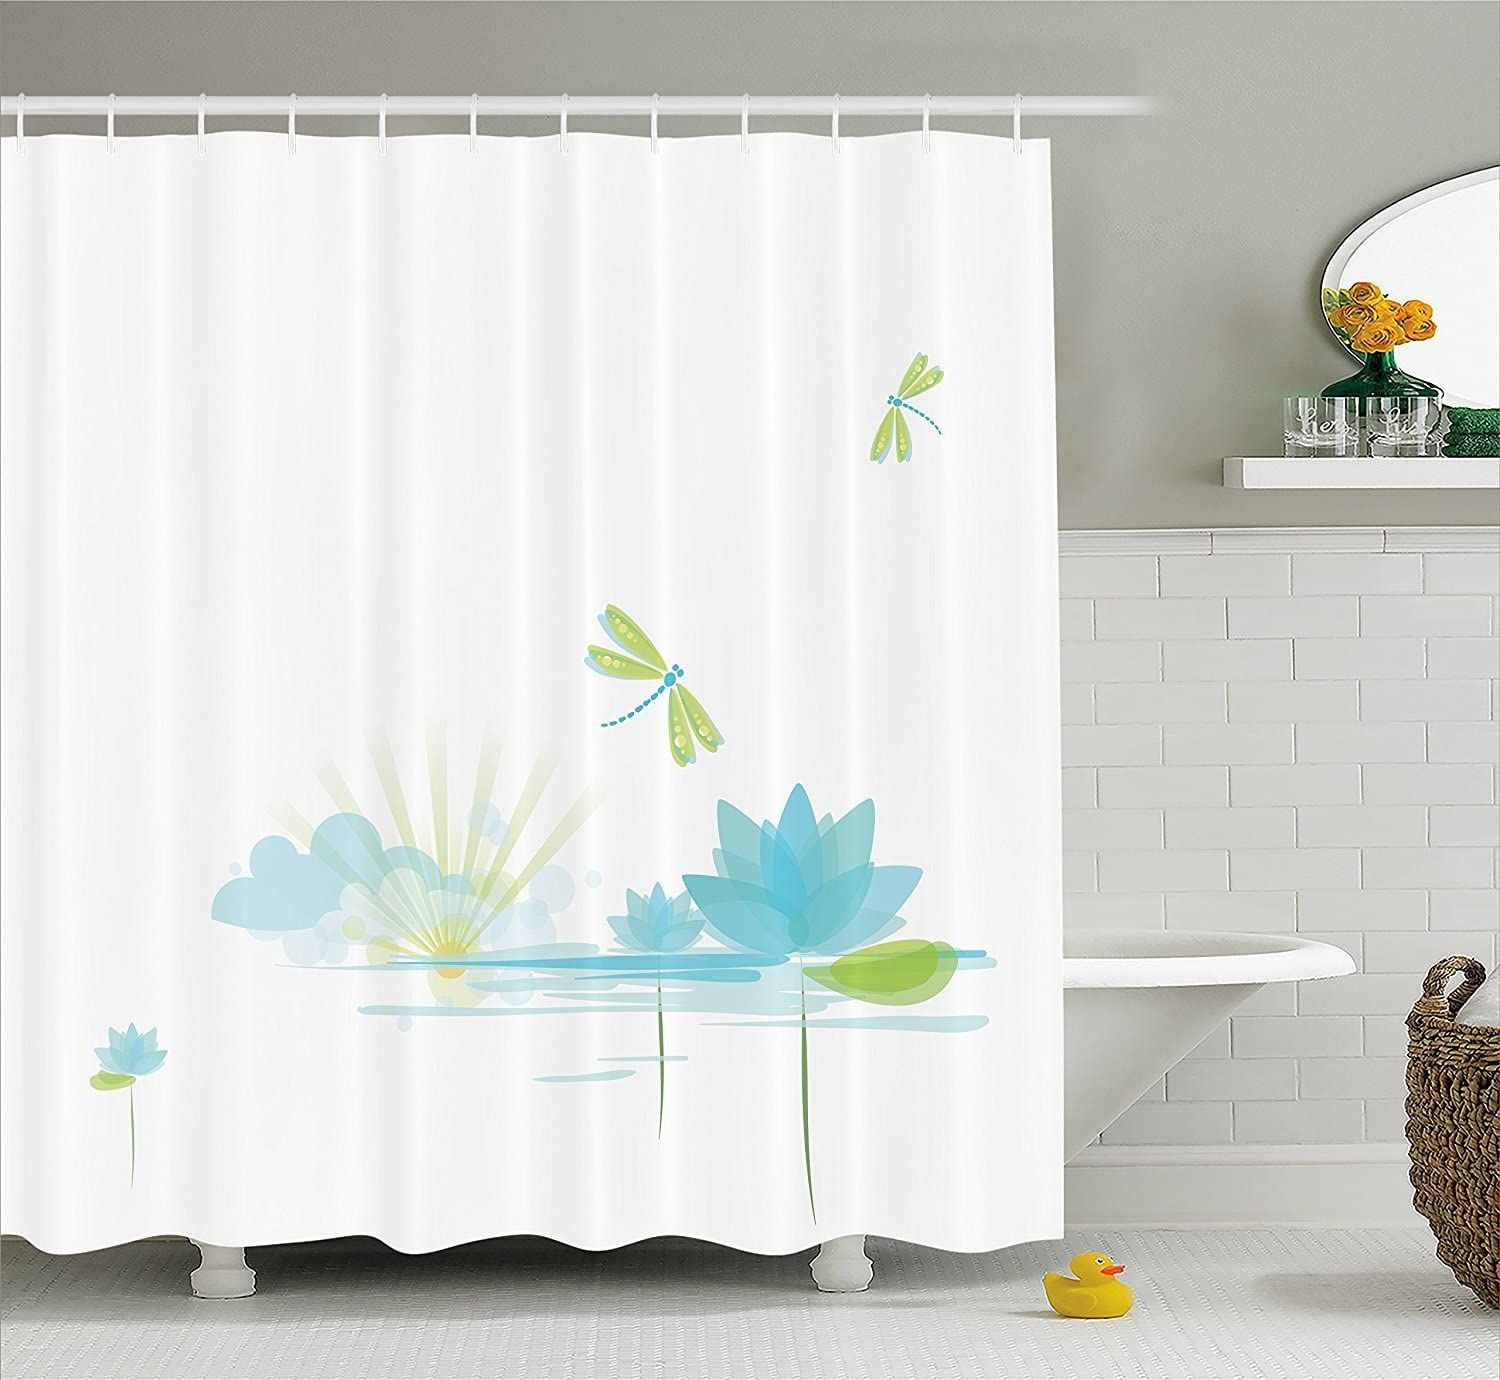 KRISTI MCCARTNEY Dragonfly Shower Curtain by, Waterlily and Dragonfly Nature Background Clouds Lake Sun Design, Fabric Bathroom Decor Set with Hooks, 84 Inches Extra Long, Apple Green Light Blue